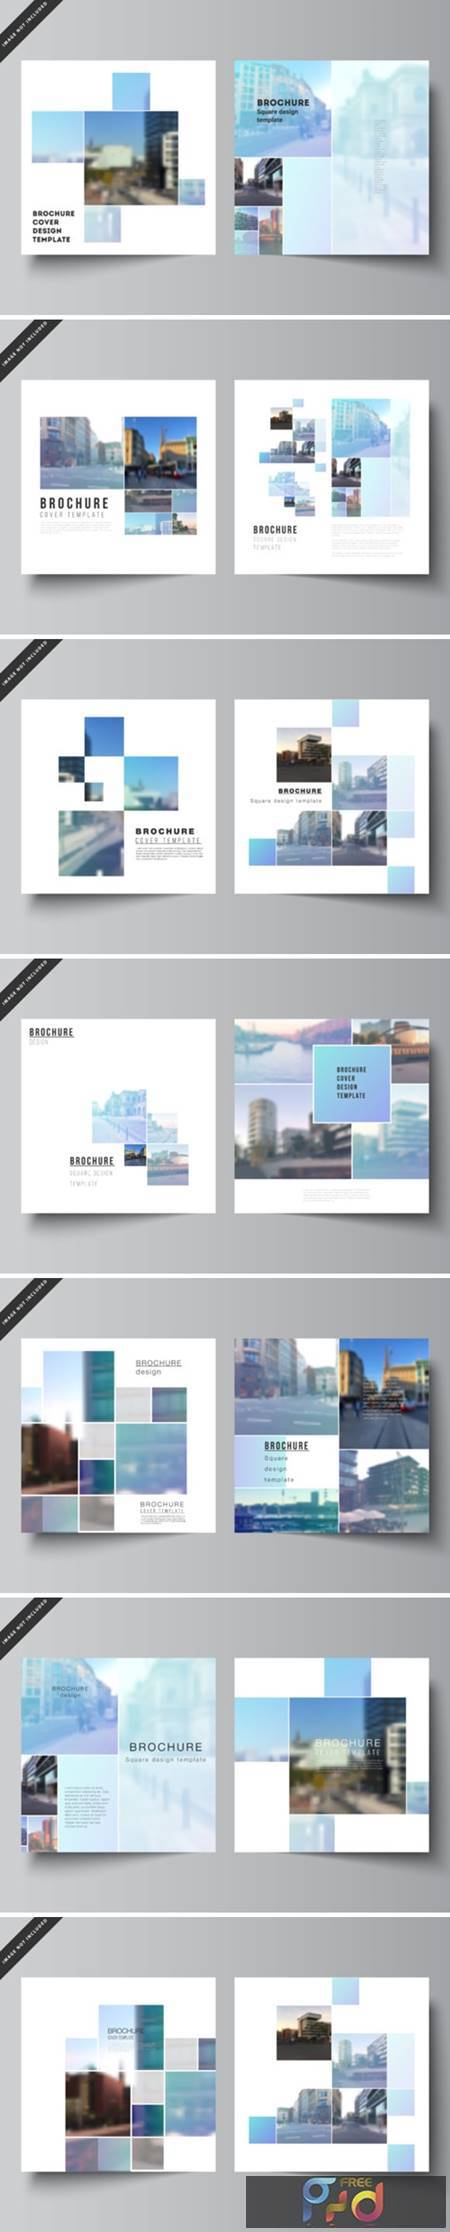 Square Format Covers Templates 1